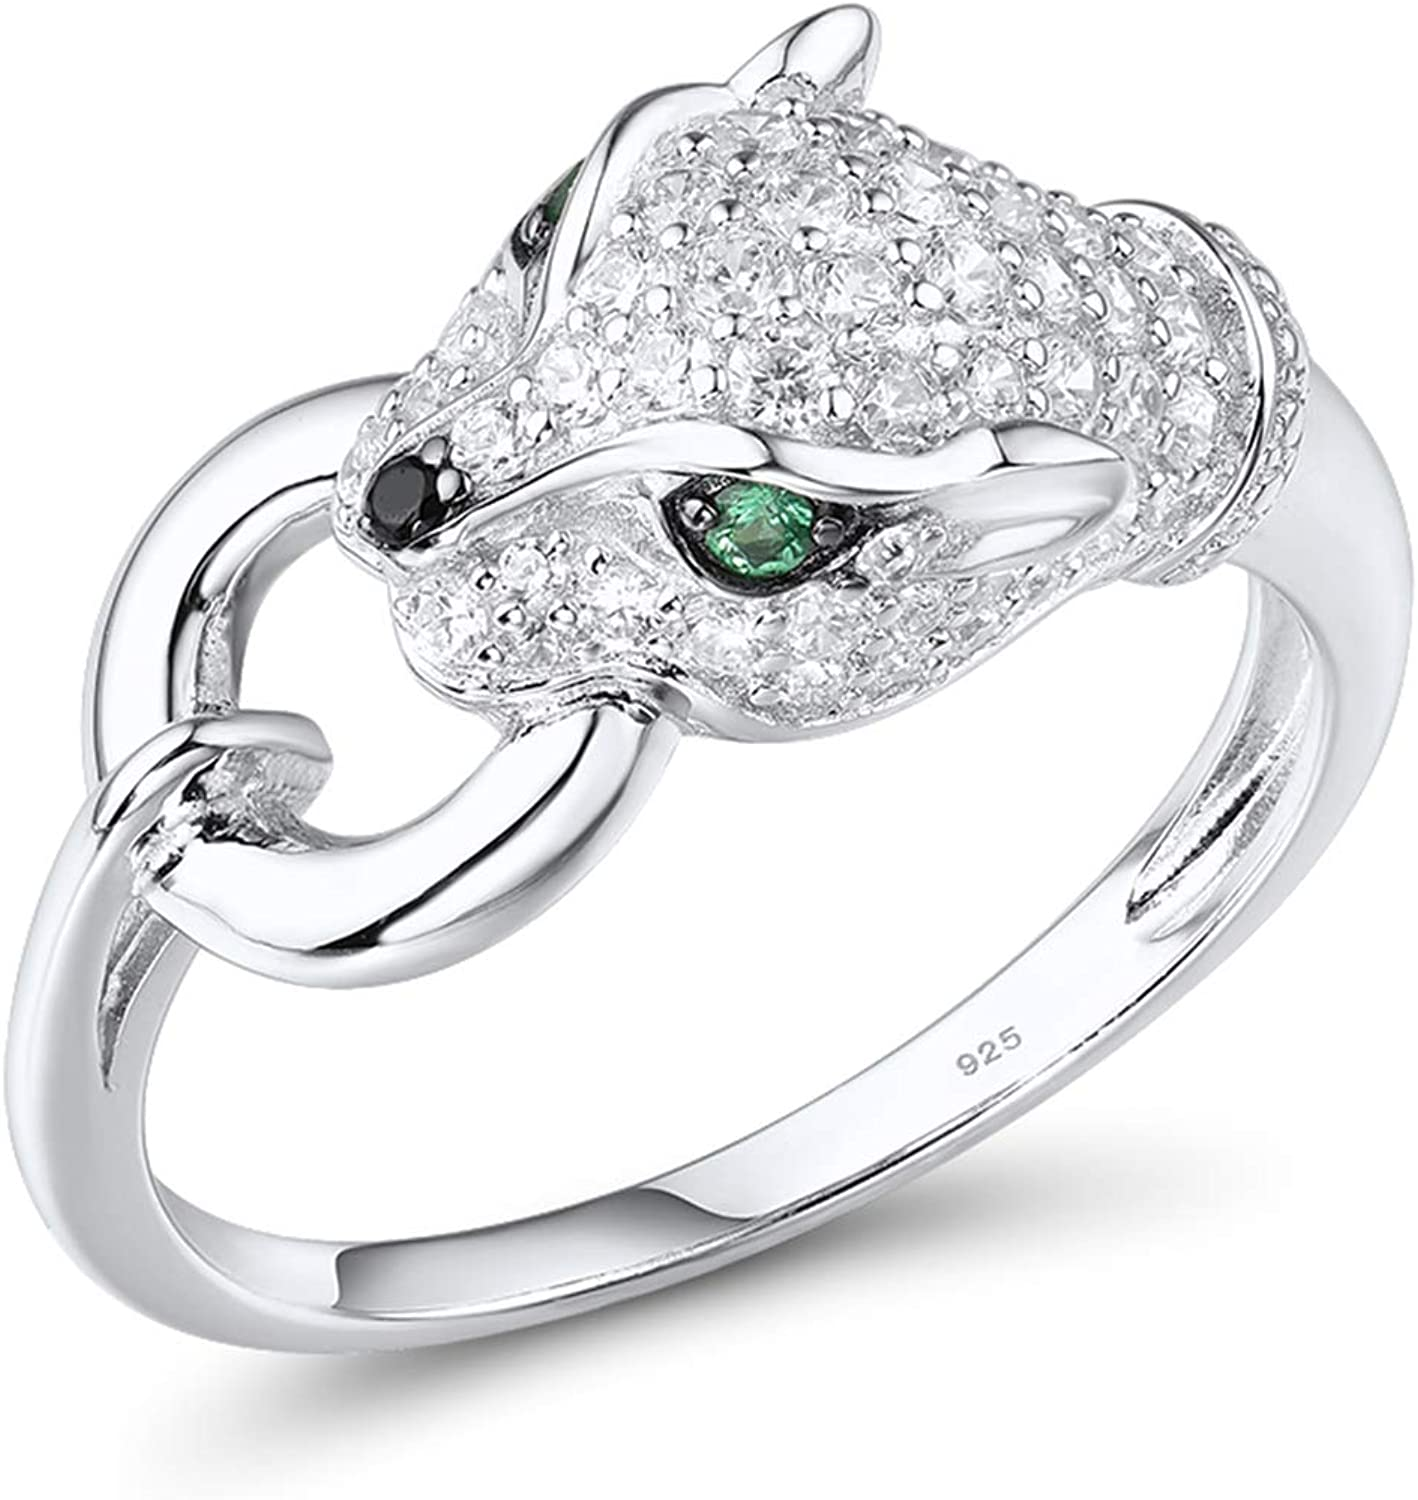 Bombing new work Santuzza Some reservation Panther Ring 925 Sterling Rings Zi Leopard Silver Cubic